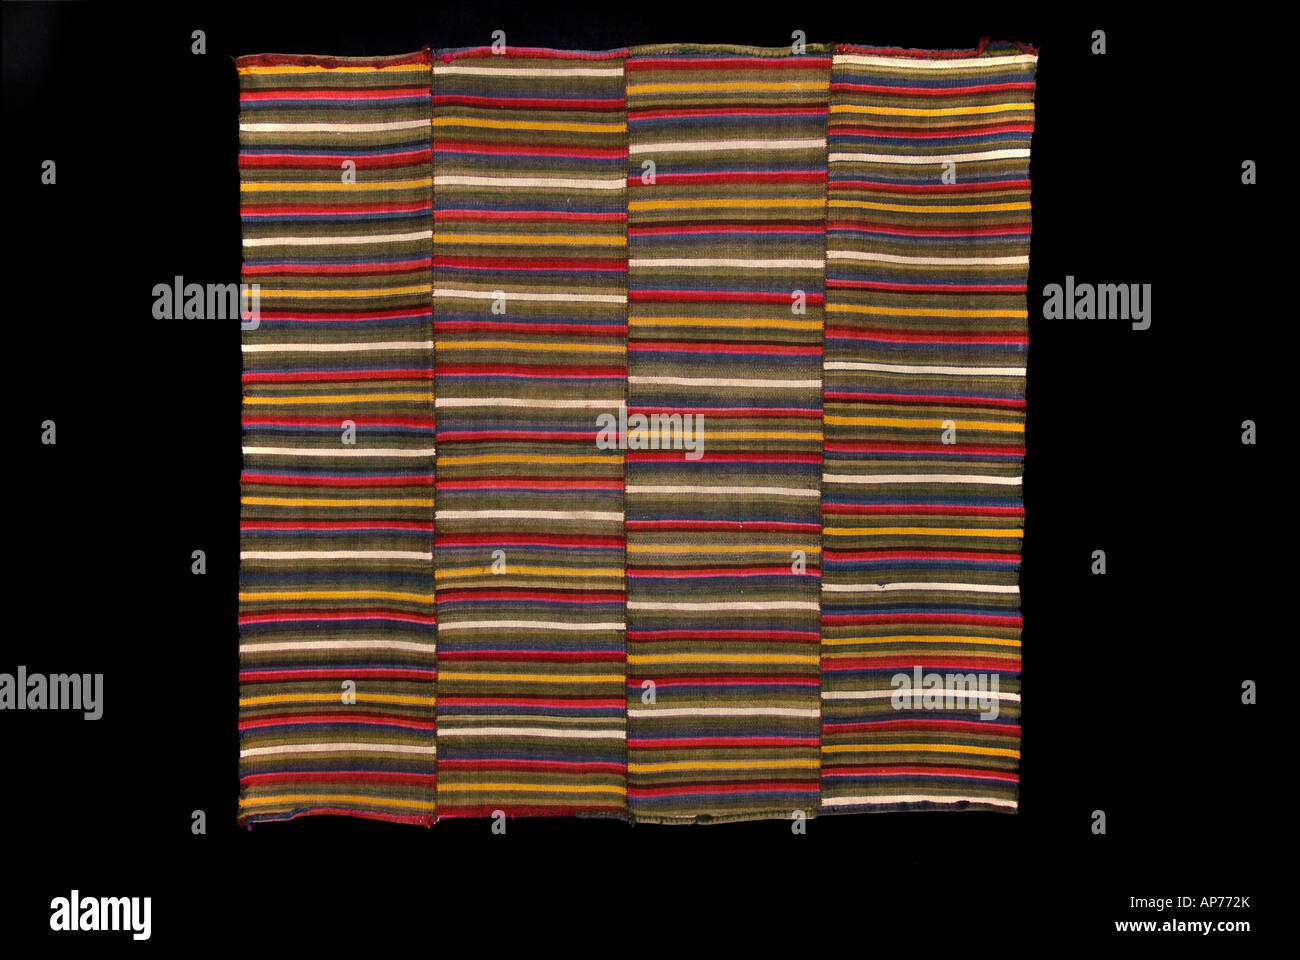 Striped woollen fabric from Tibet - Stock Image